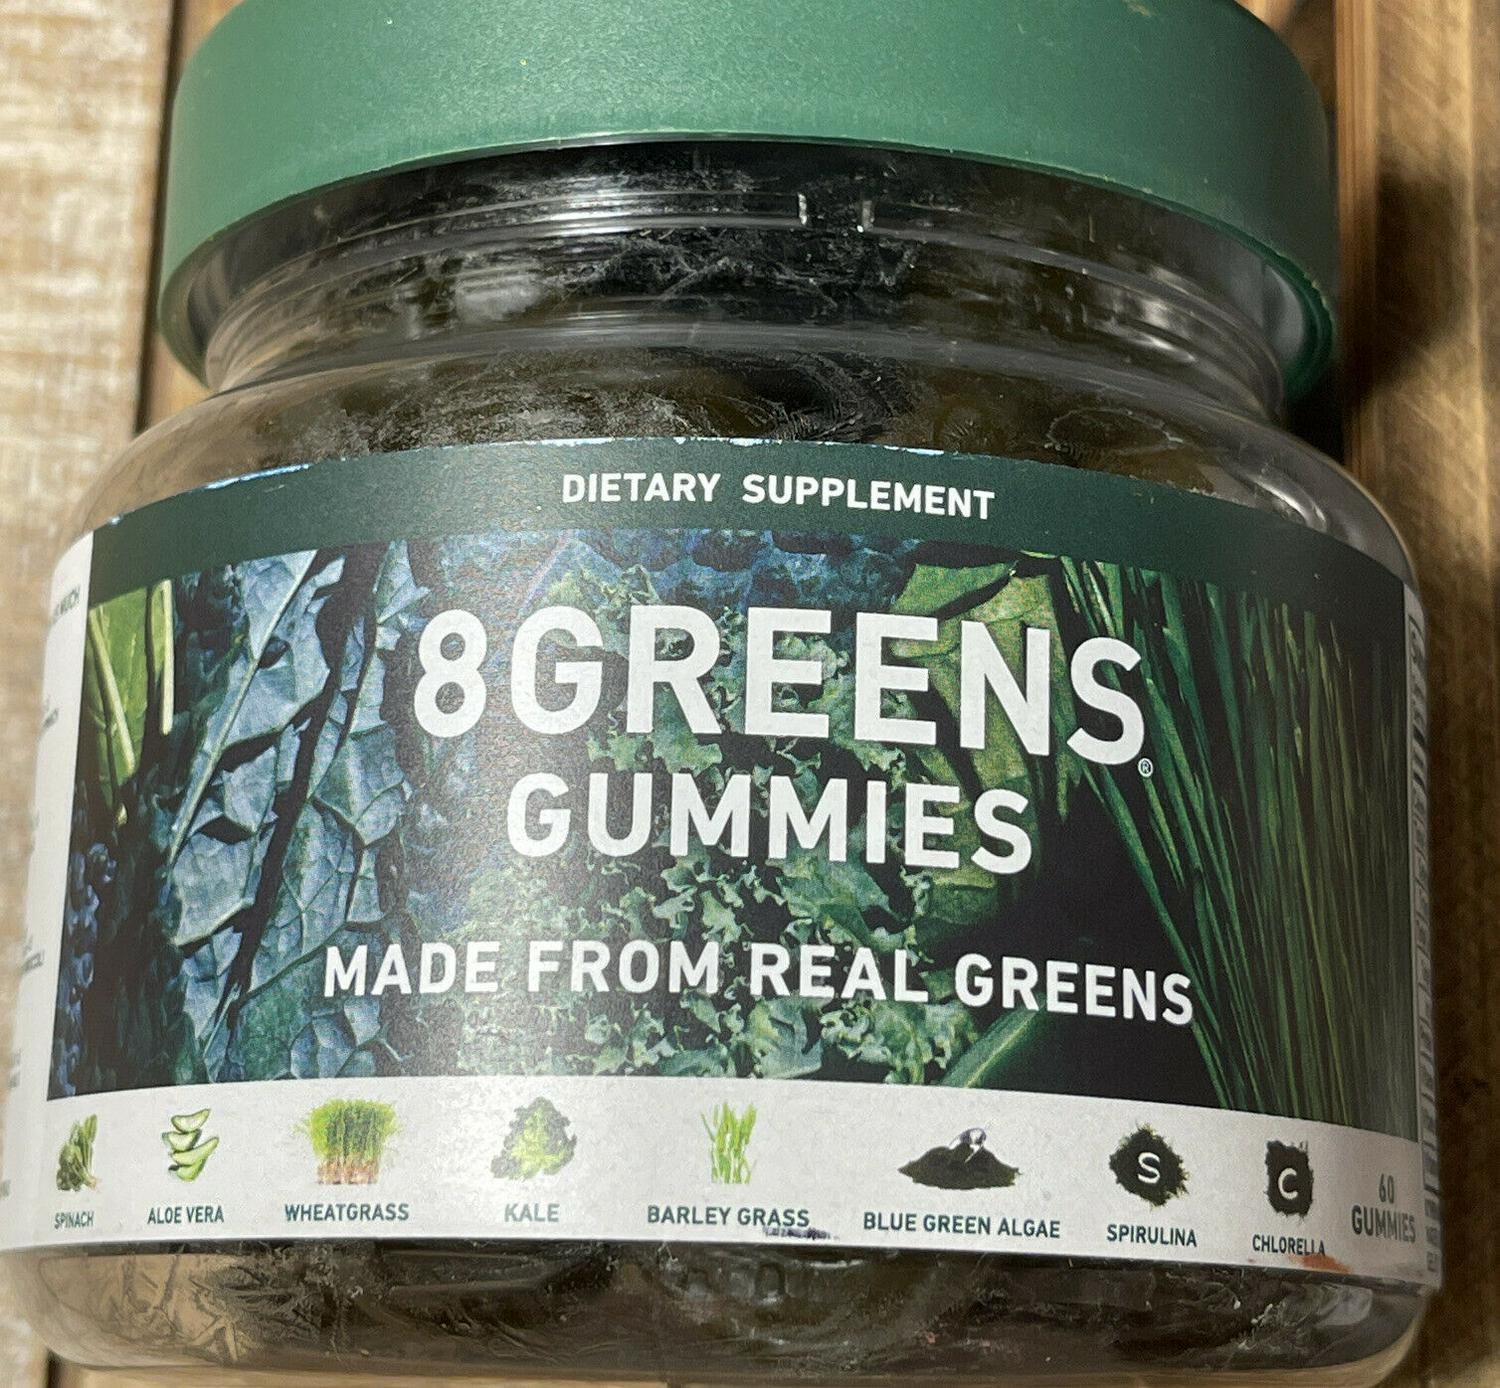 NEW SEALED 8 Greens Gummies Dietary Supplement 60 Gummies Exp 02/2022